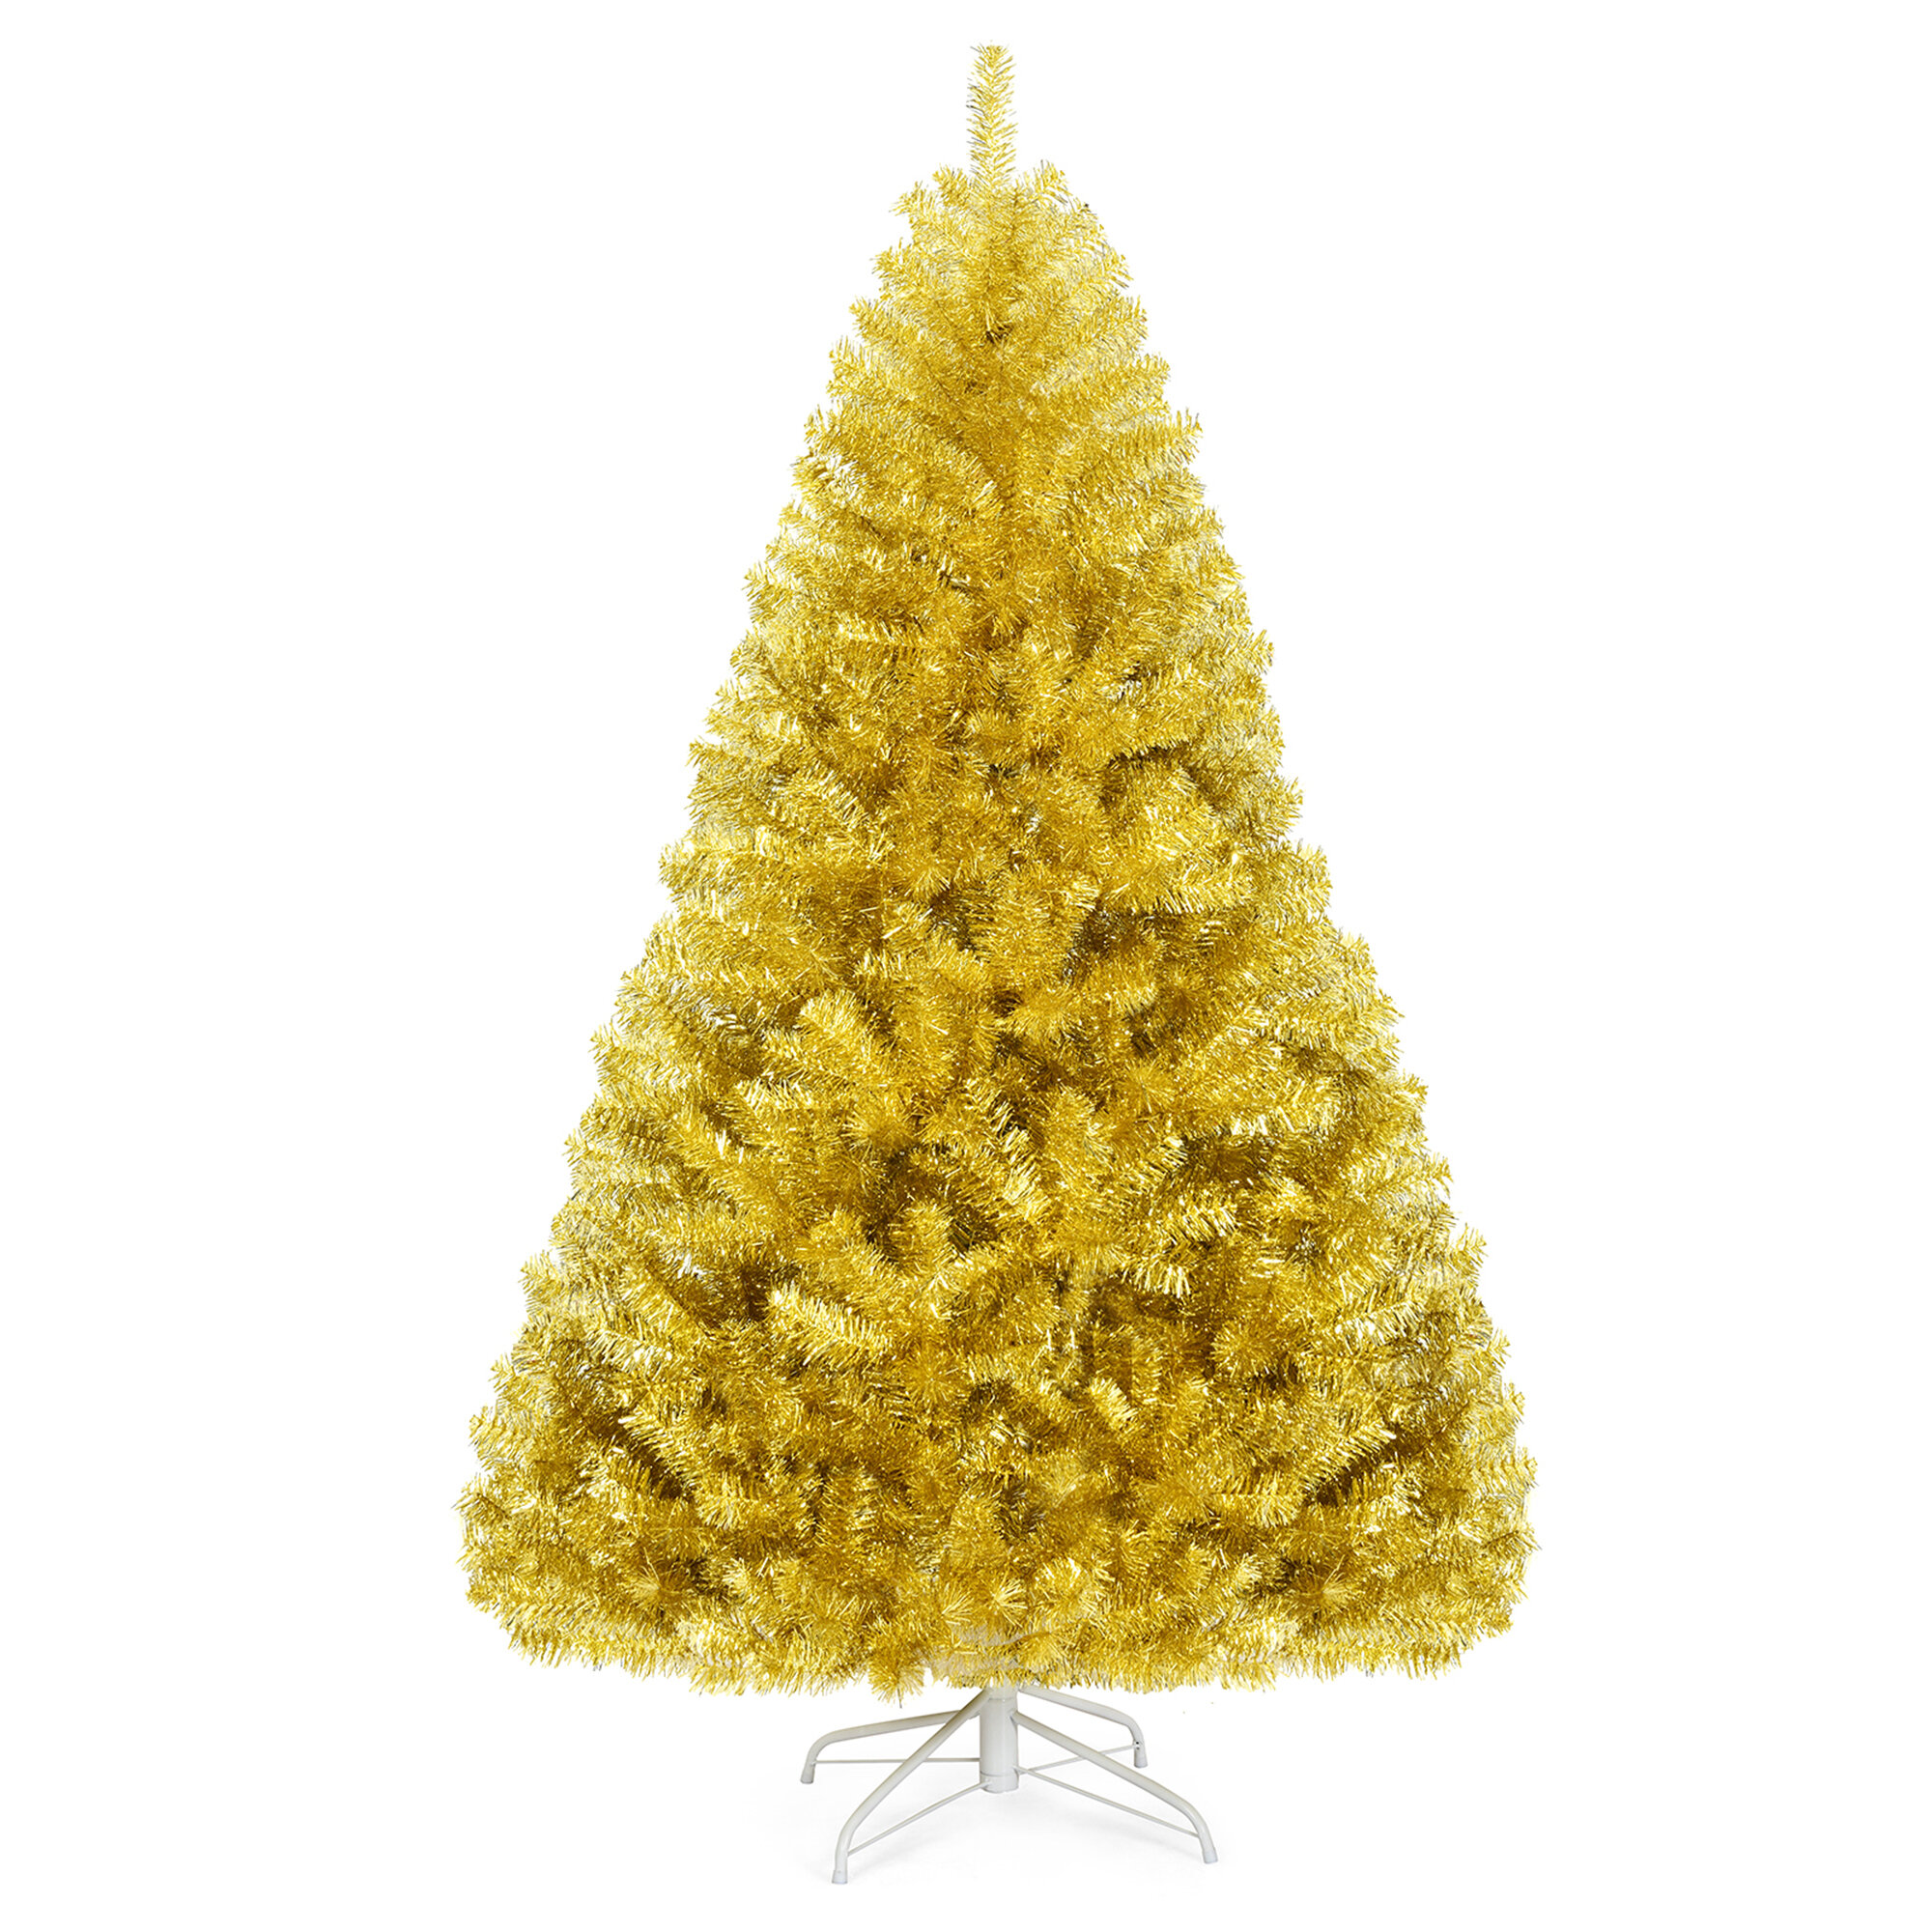 The Holiday Aisle Champagne Gold Pine Artificial Christmas Tree Wayfair